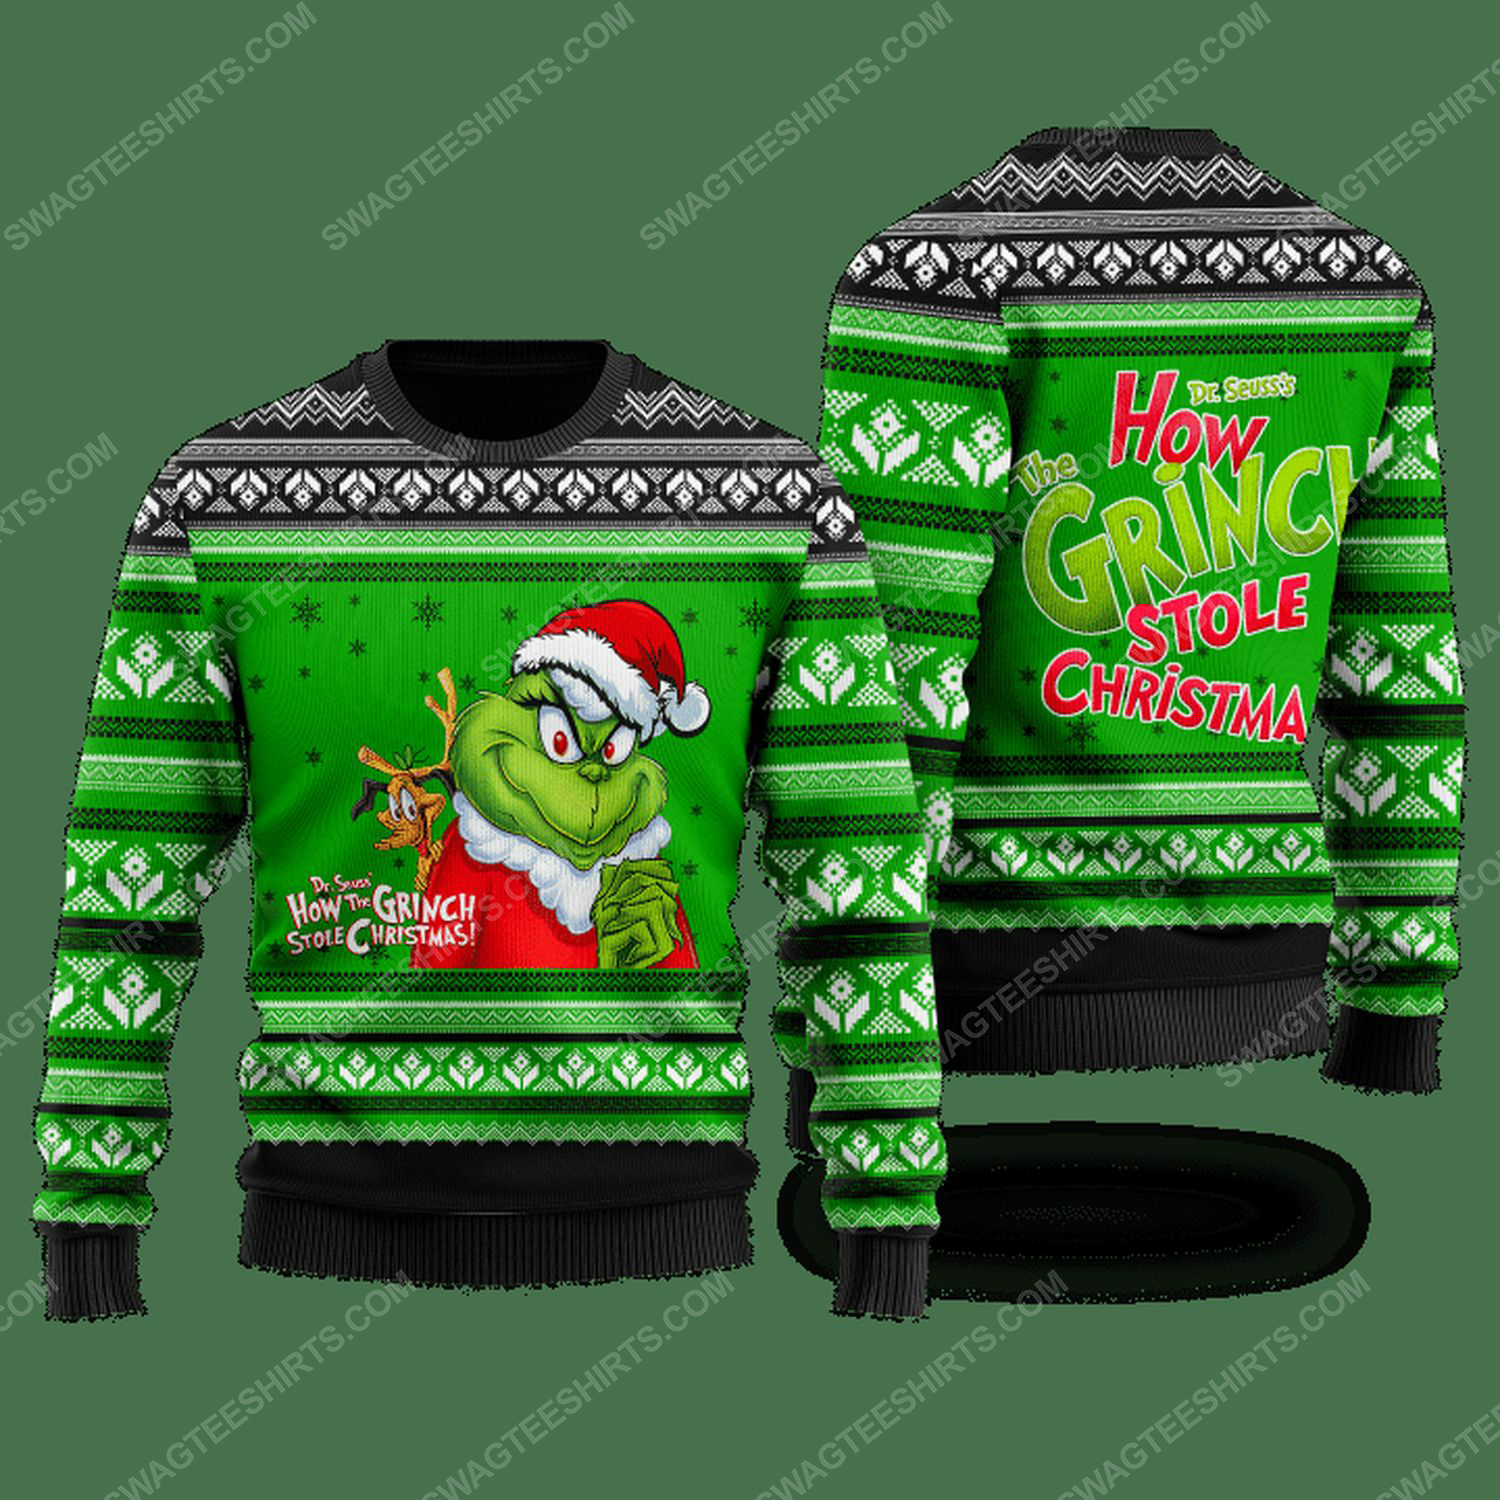 How grinch stole christmas ugly christmas sweater - green - Copy